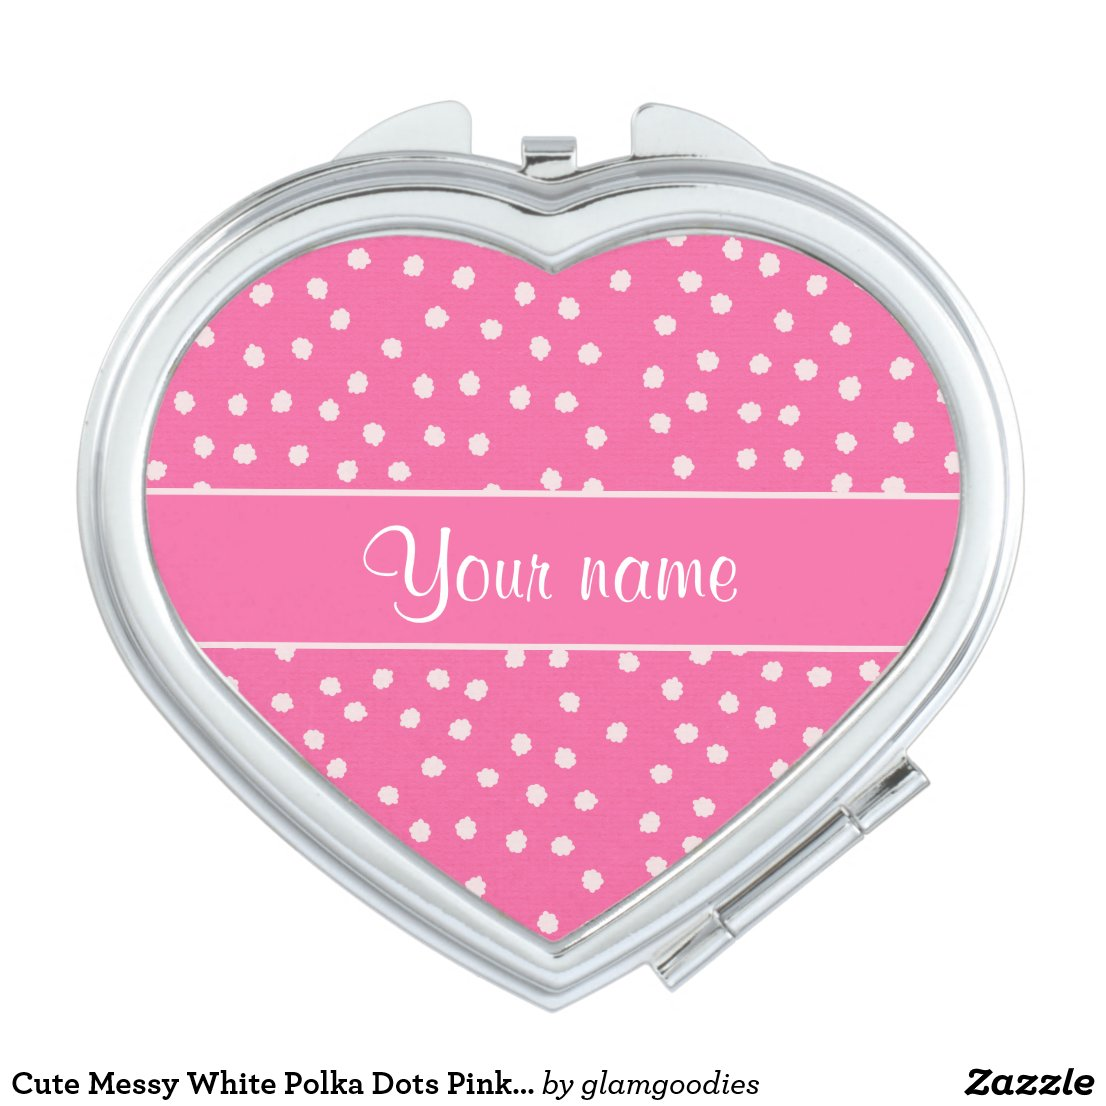 Cute Messy White Polka Dots Pink Background